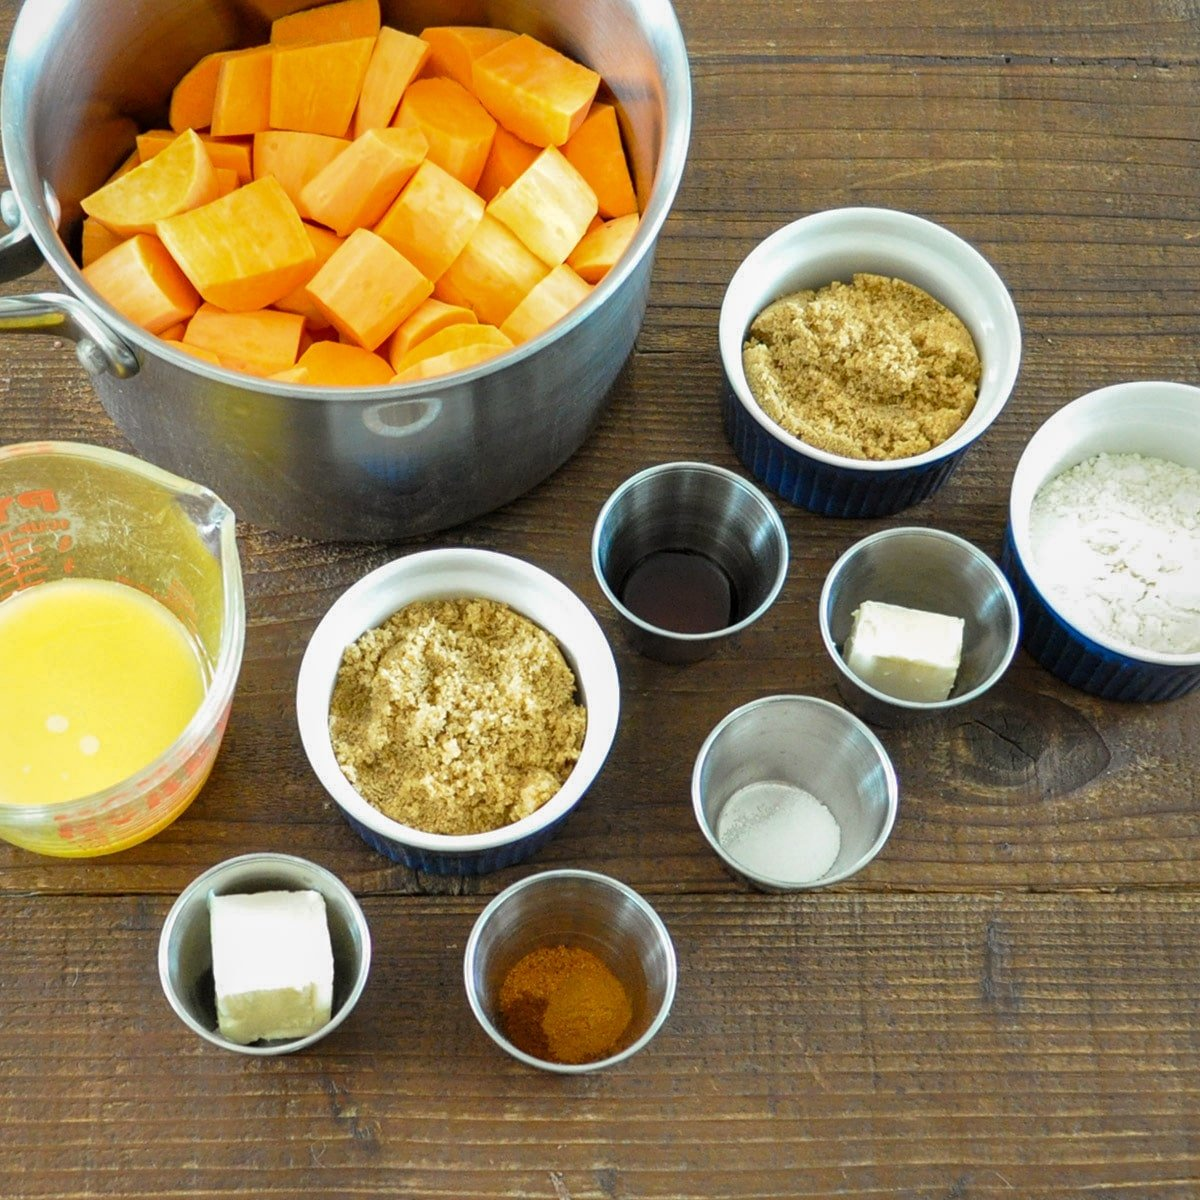 cut up sweet potatoes, orange juice, butter, flour, brown sugar, and spices measured for recipe